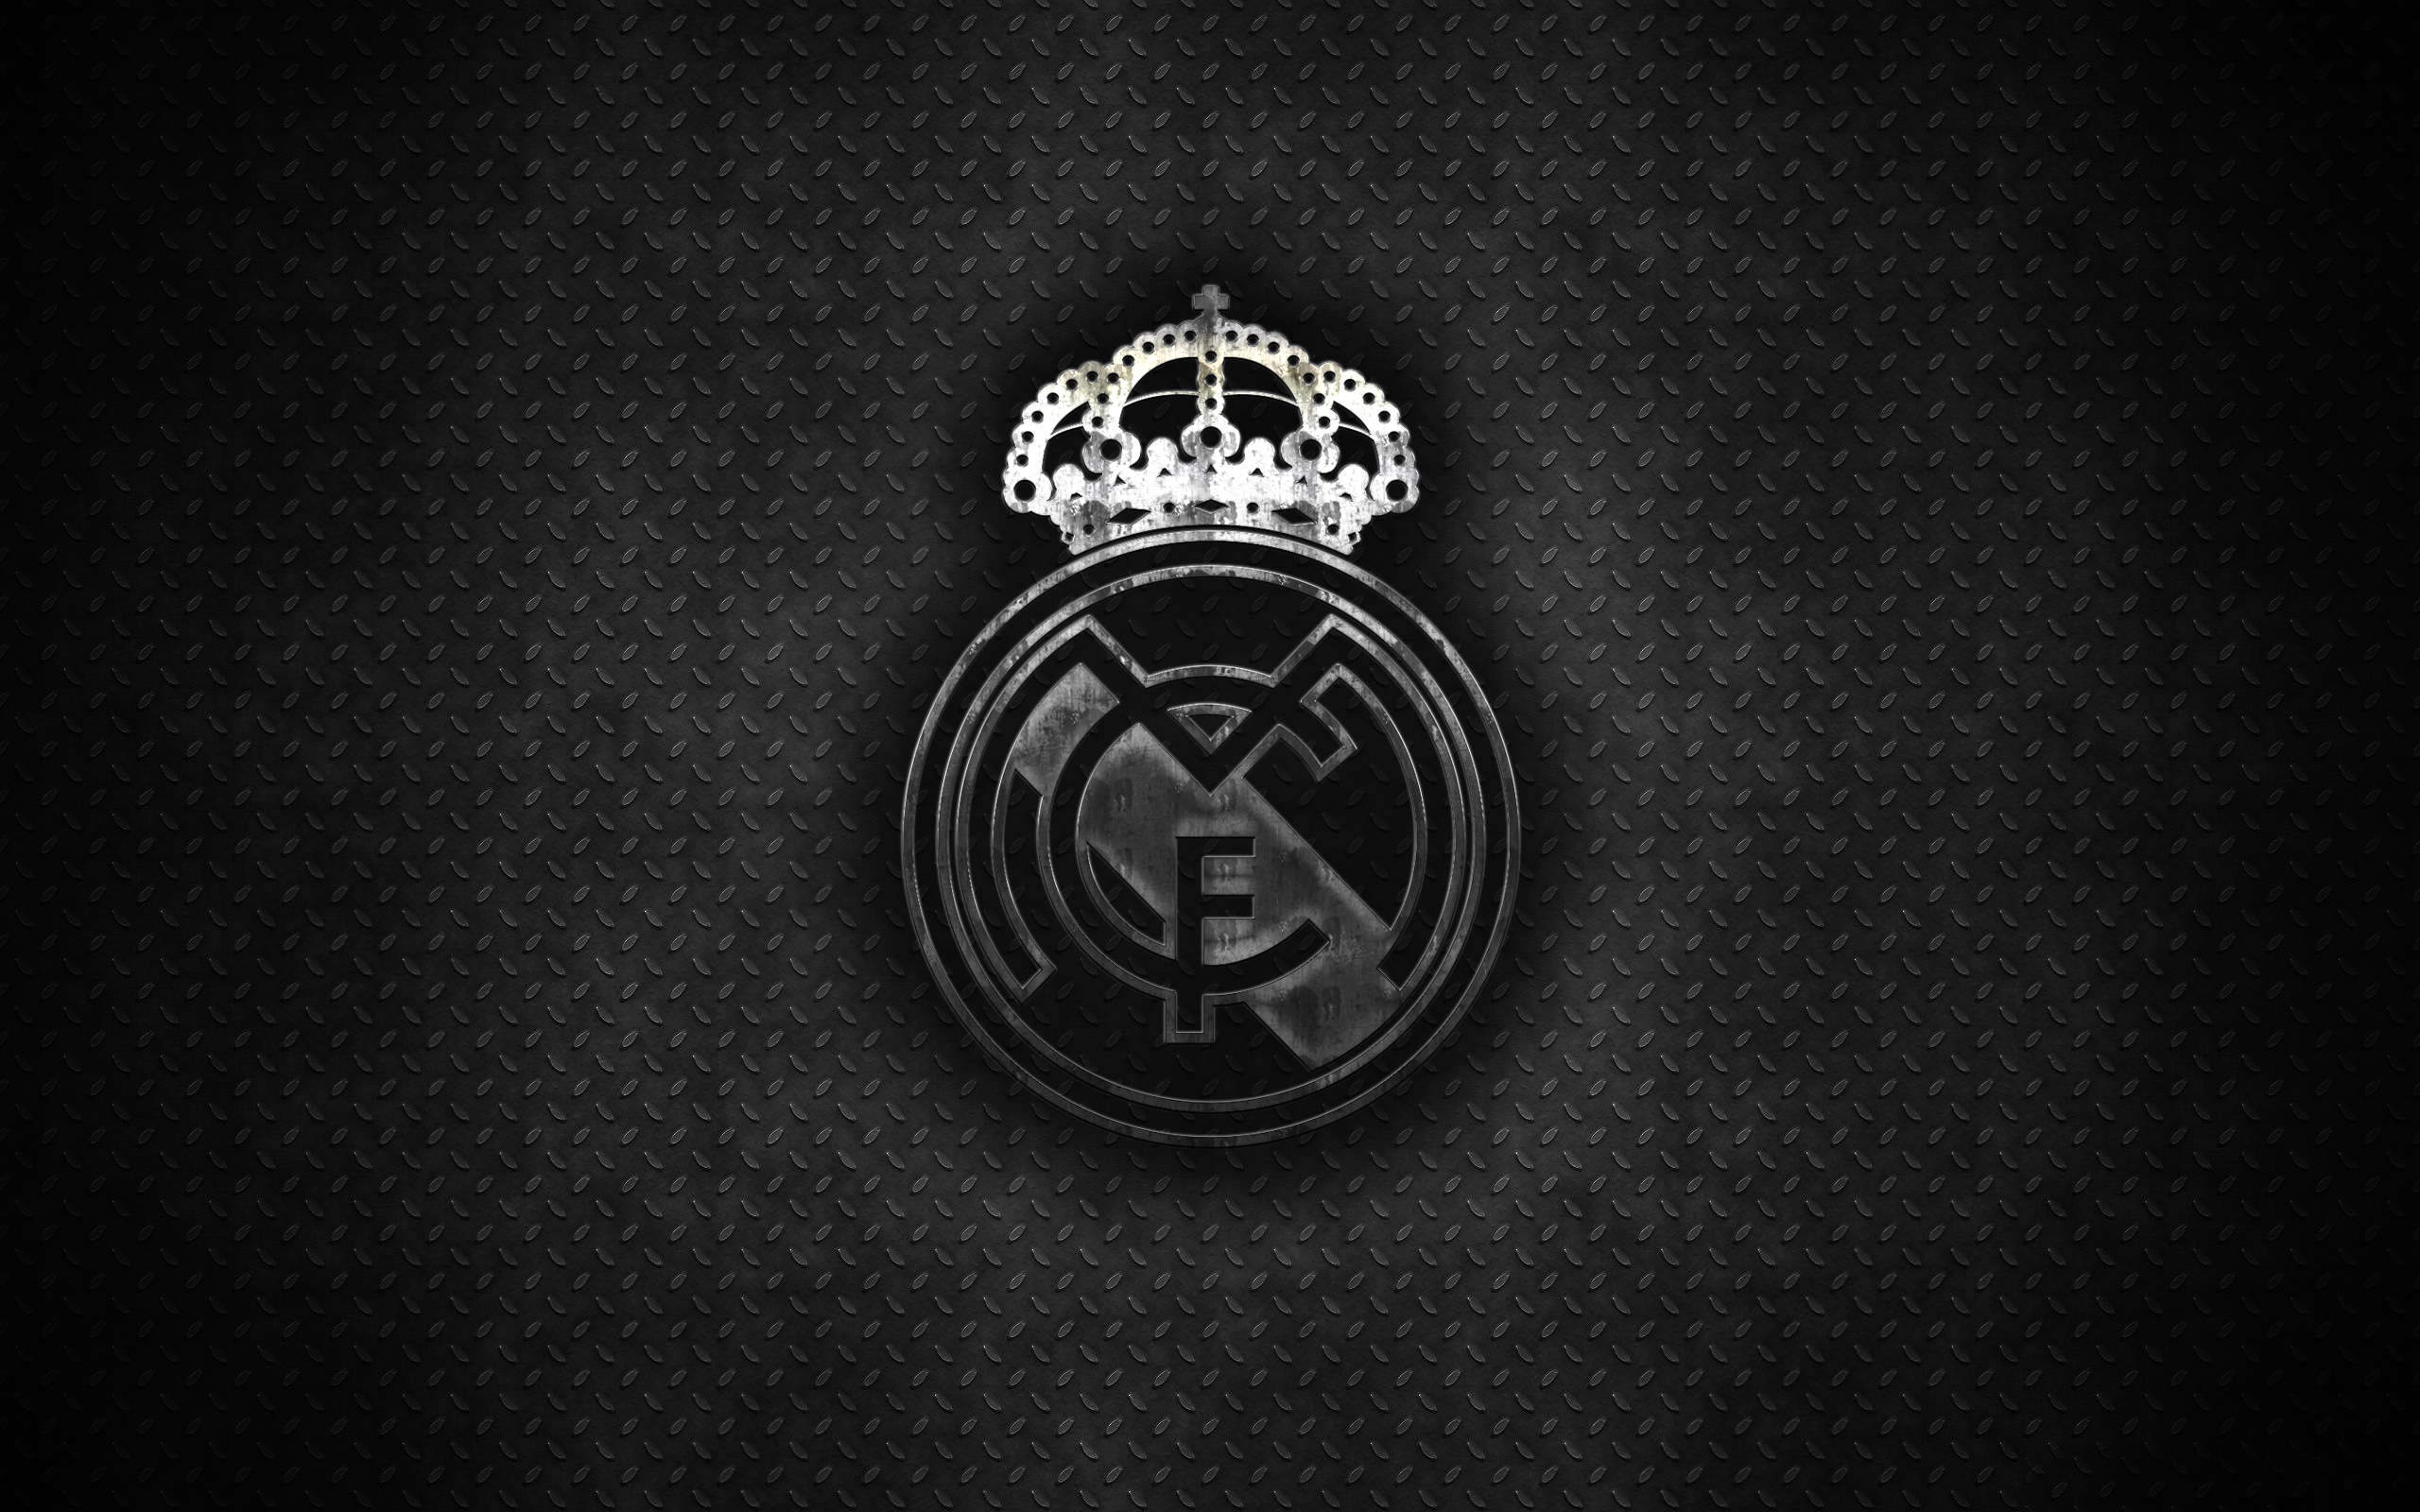 Real Madrid Logo Hd Wallpaper Background Image 2560x1600 Id 969486 Wallpaper Abyss